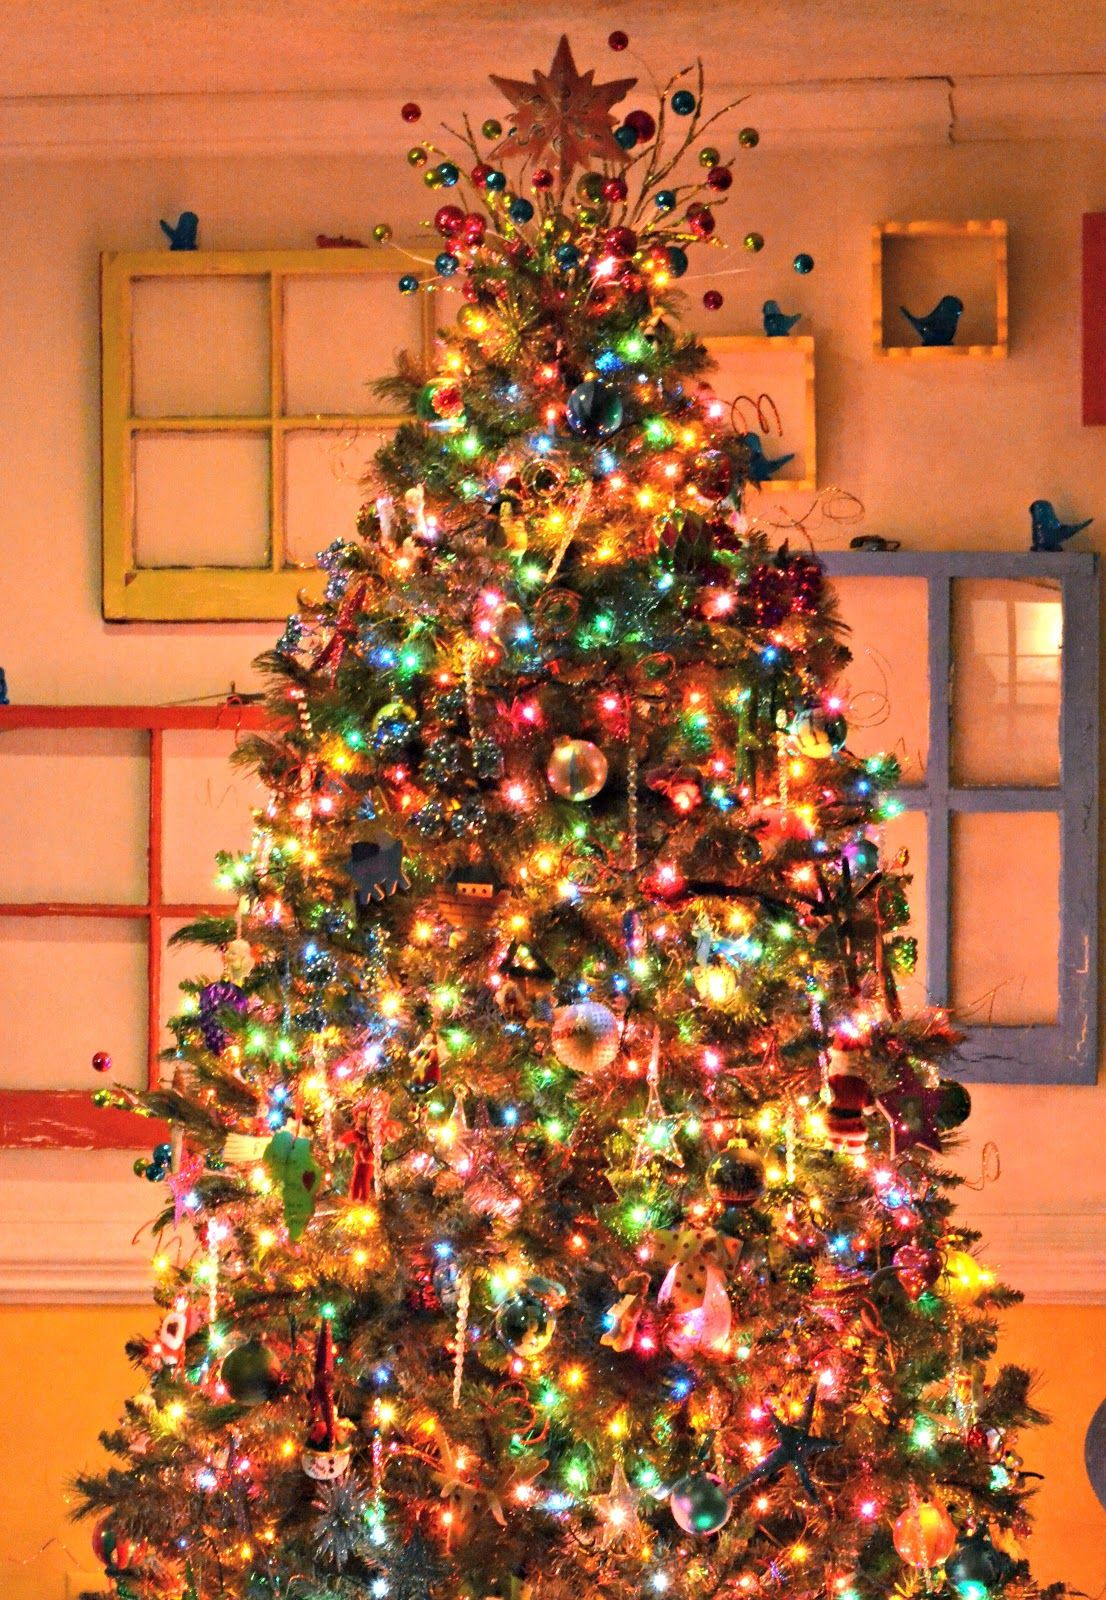 Awesome The Intentional Home: How To Have A Pretty Christmas Tree Even When The  Kids Decorate It